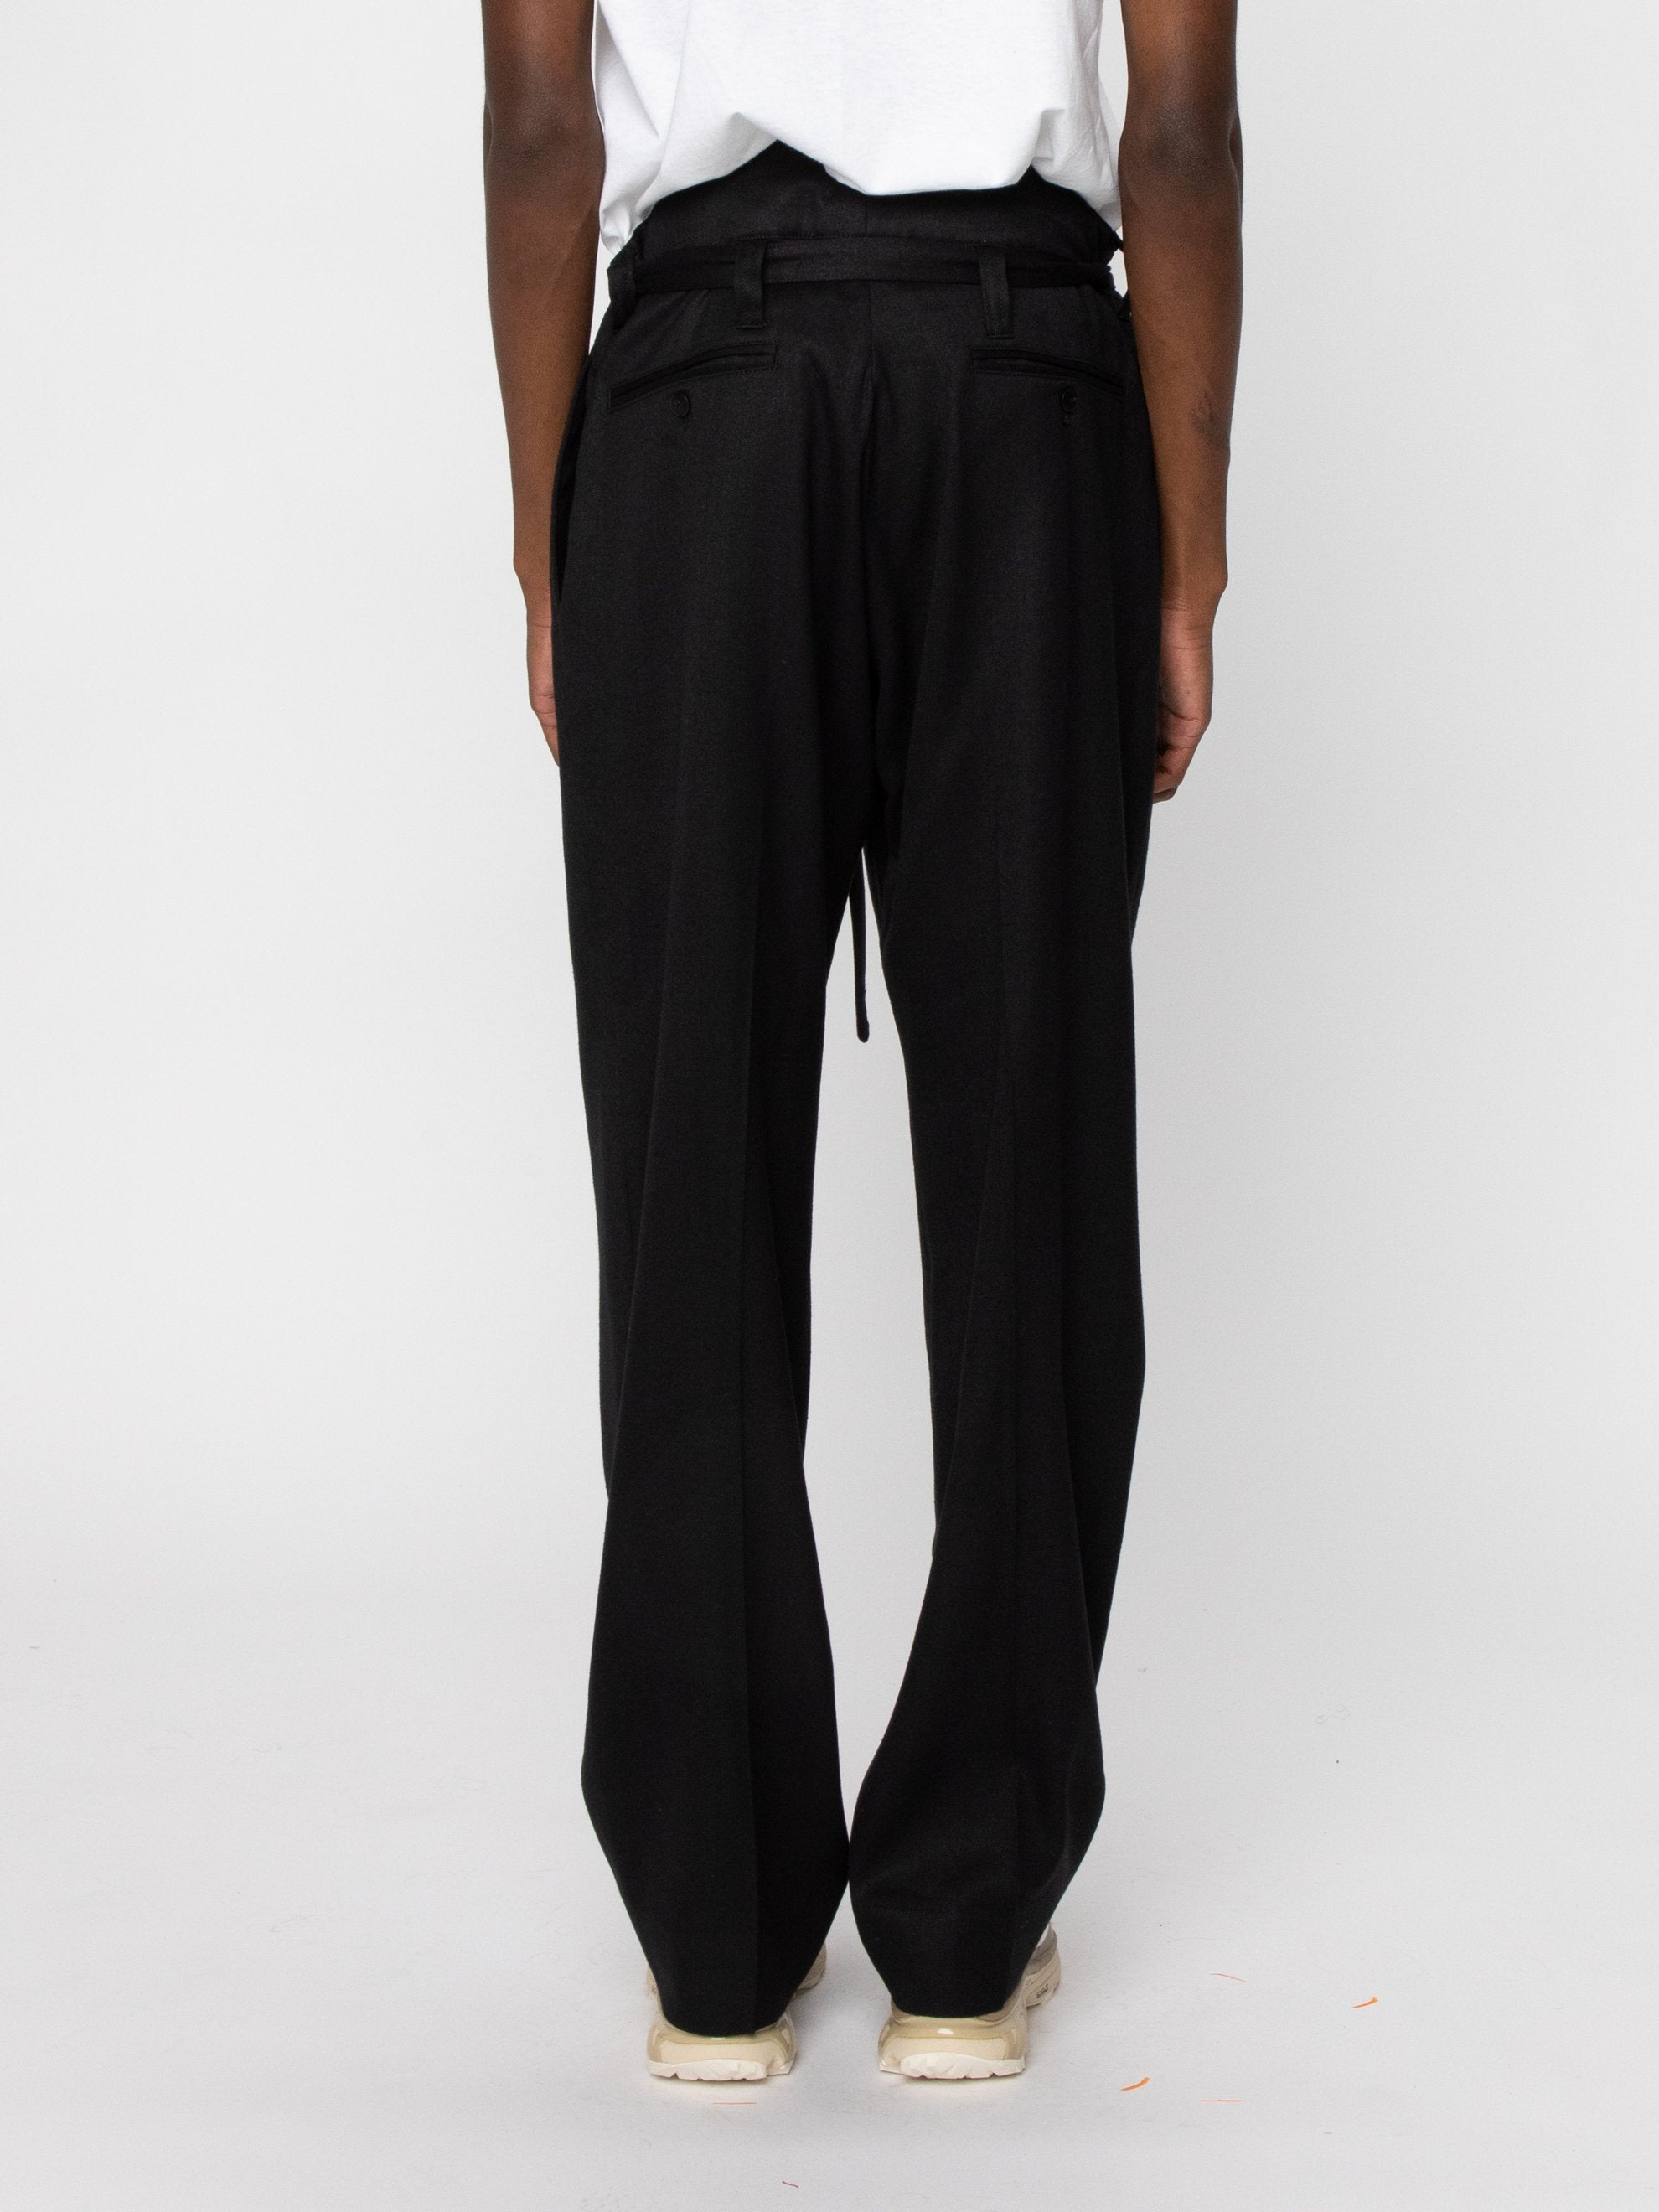 Black Hakama Pants 5